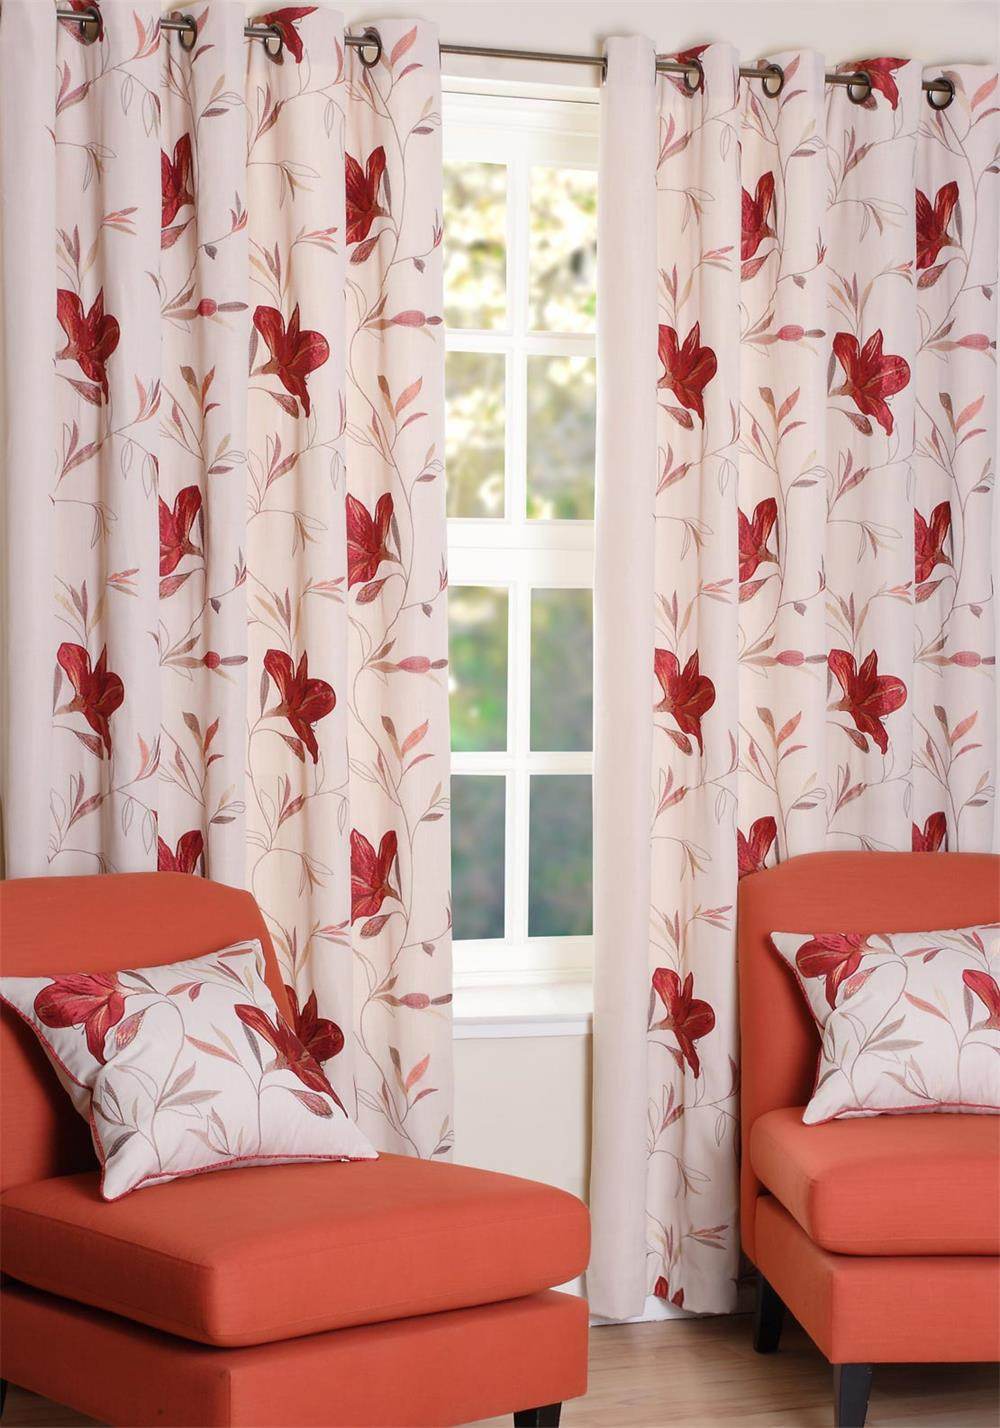 SLX Fleece Lined Shelley Ruby Readymade Eyelet Curtains, Cream Multi